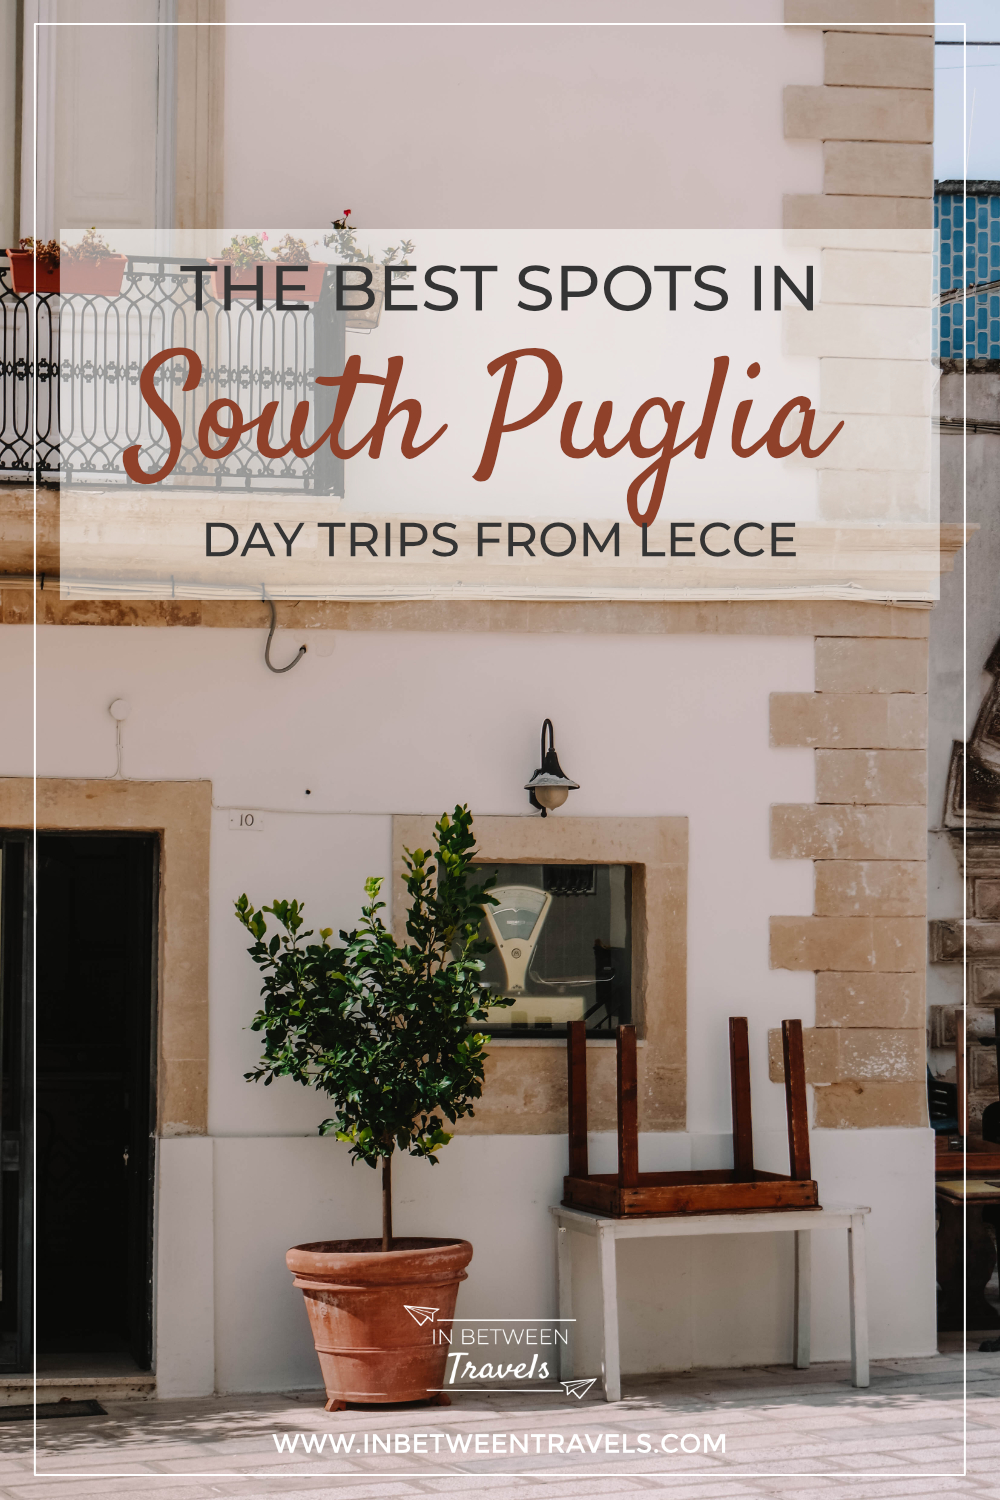 Discover the South of Puglia, with day trips from Lecce, Italy